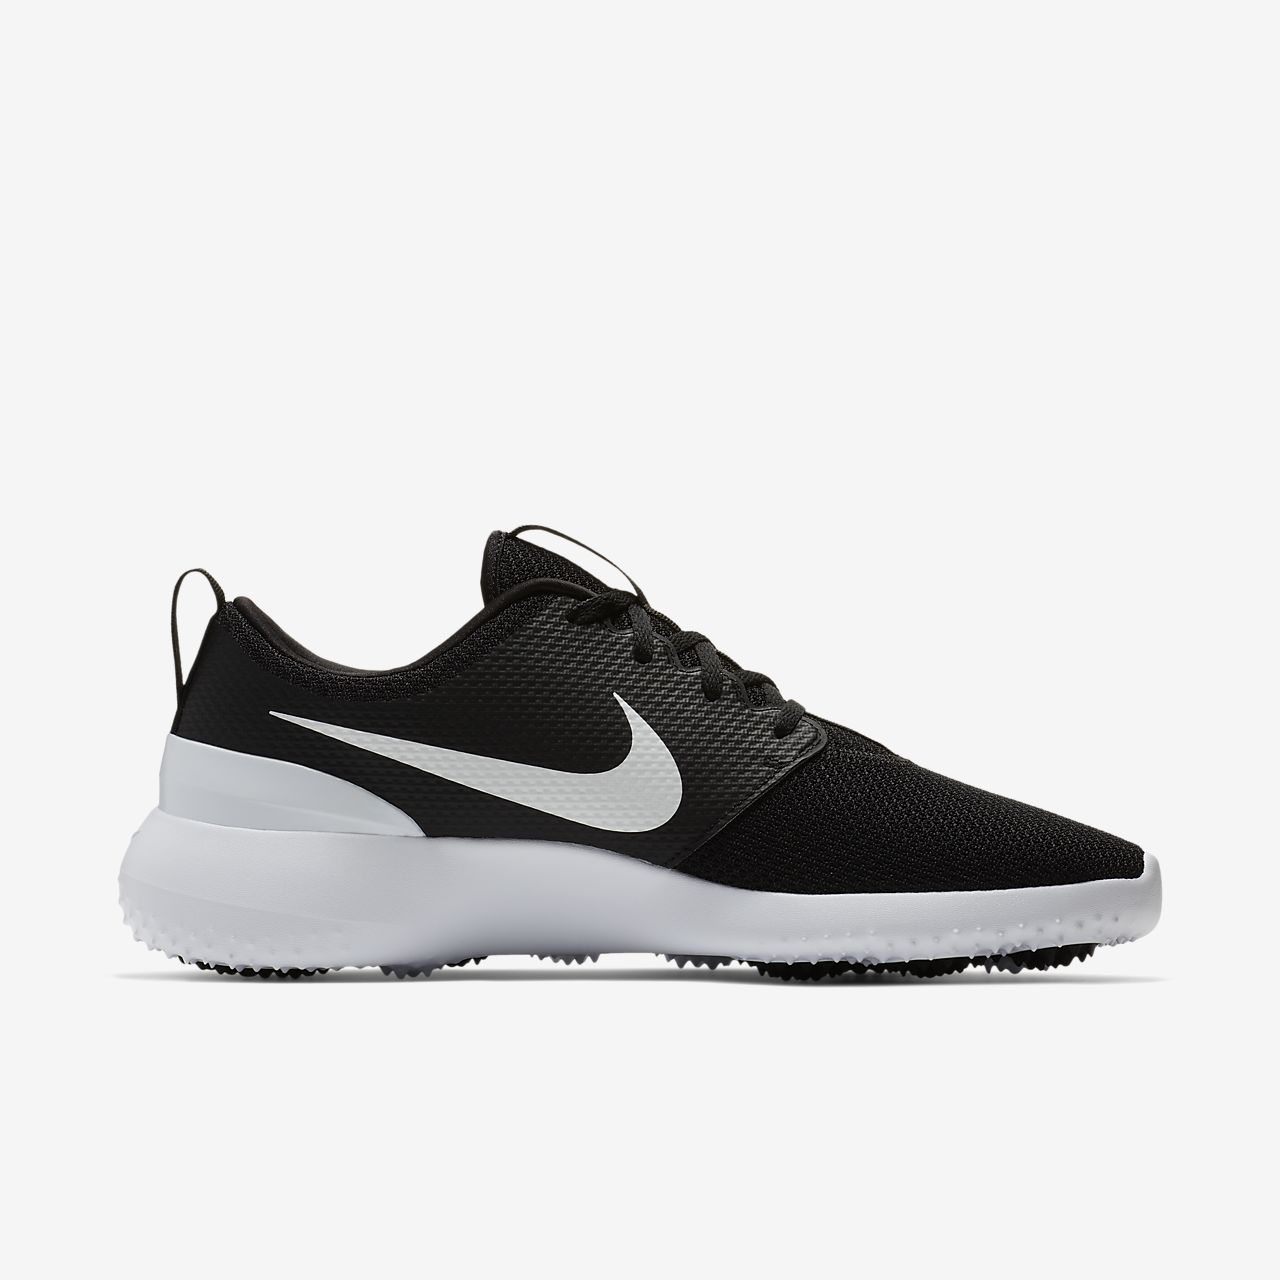 premium selection 39a7d bd60f Men s Golf Shoe. Nike Roshe G